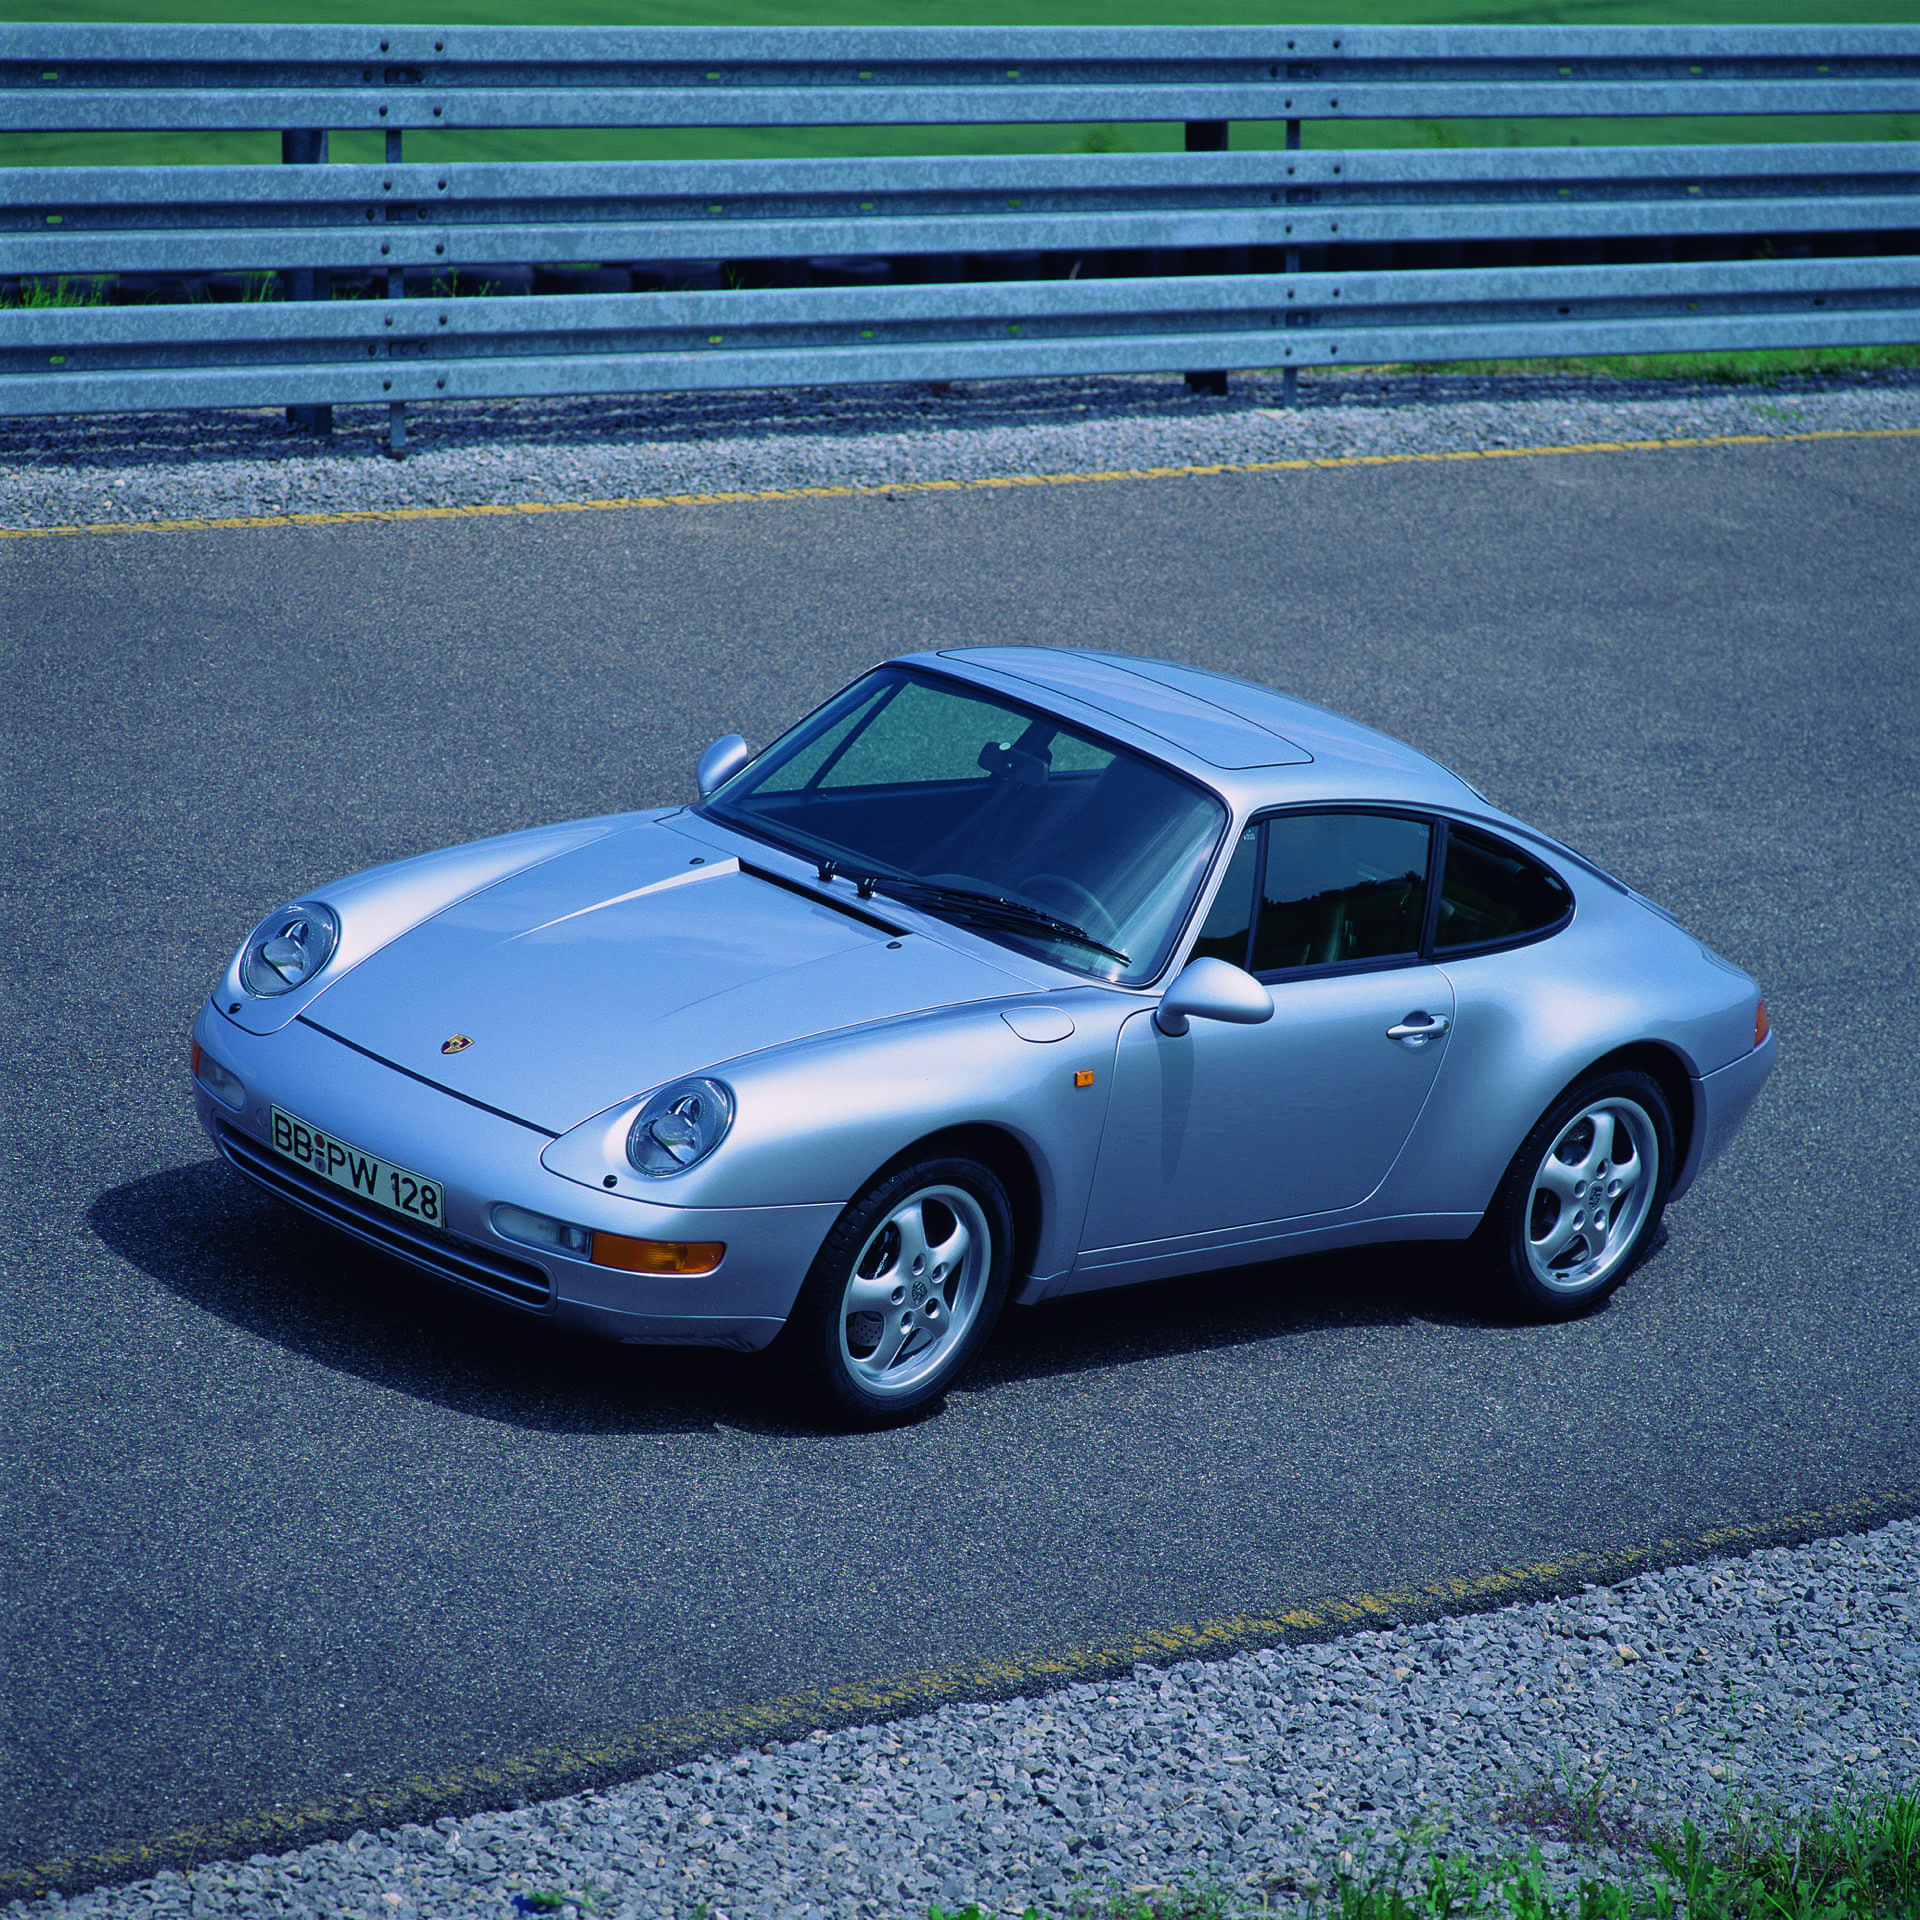 Porsche 911 993 Carrera 3 6 Coupe 1994